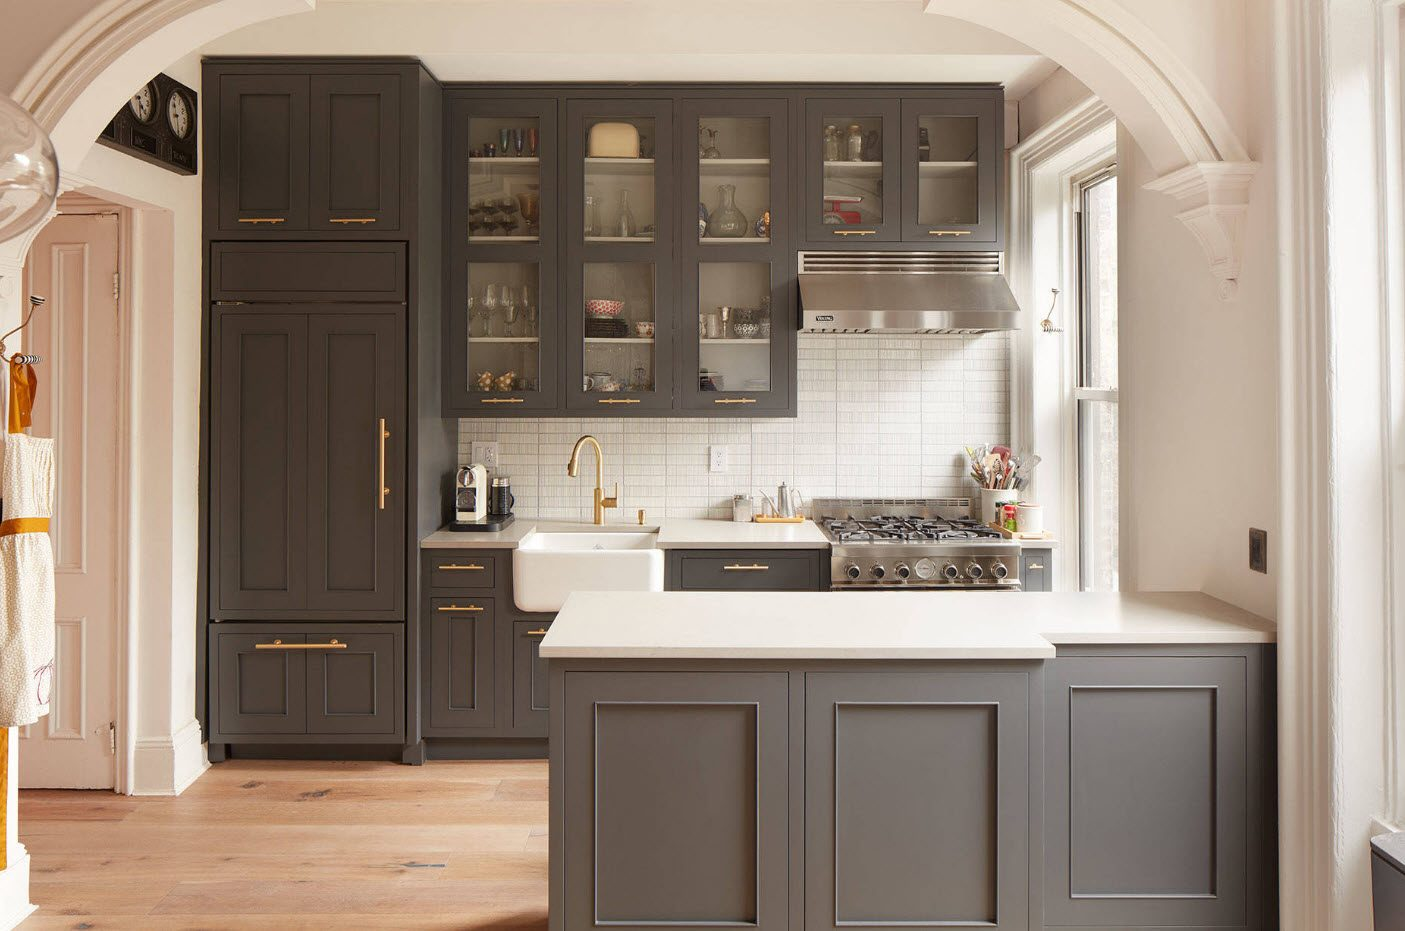 160 Square Feet Kitchen Design Ideas. Gray classic cabinets with glass inlays